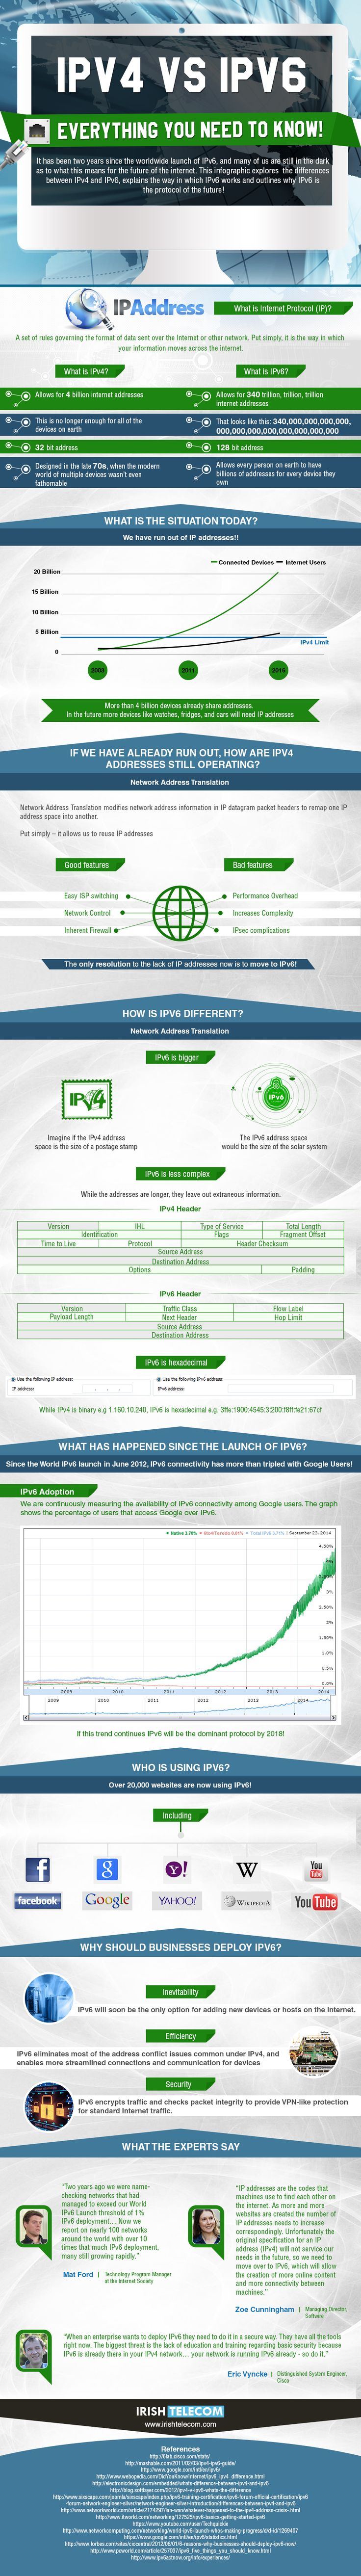 IPv4 vs IPv6: What is the difference between IPv4 and IPv6